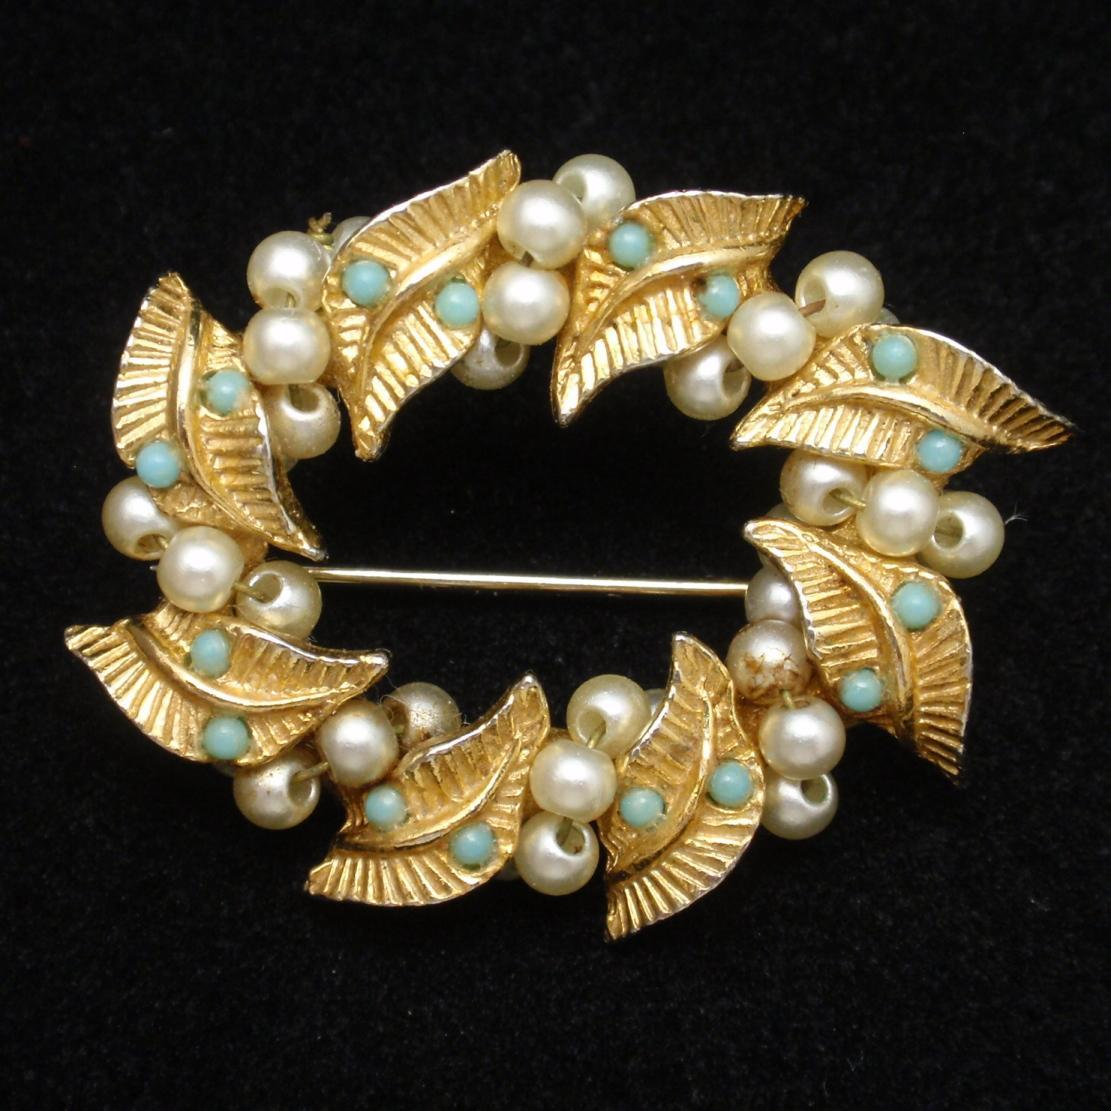 Wreath Circle Pin Vintage with Imitation Pearls